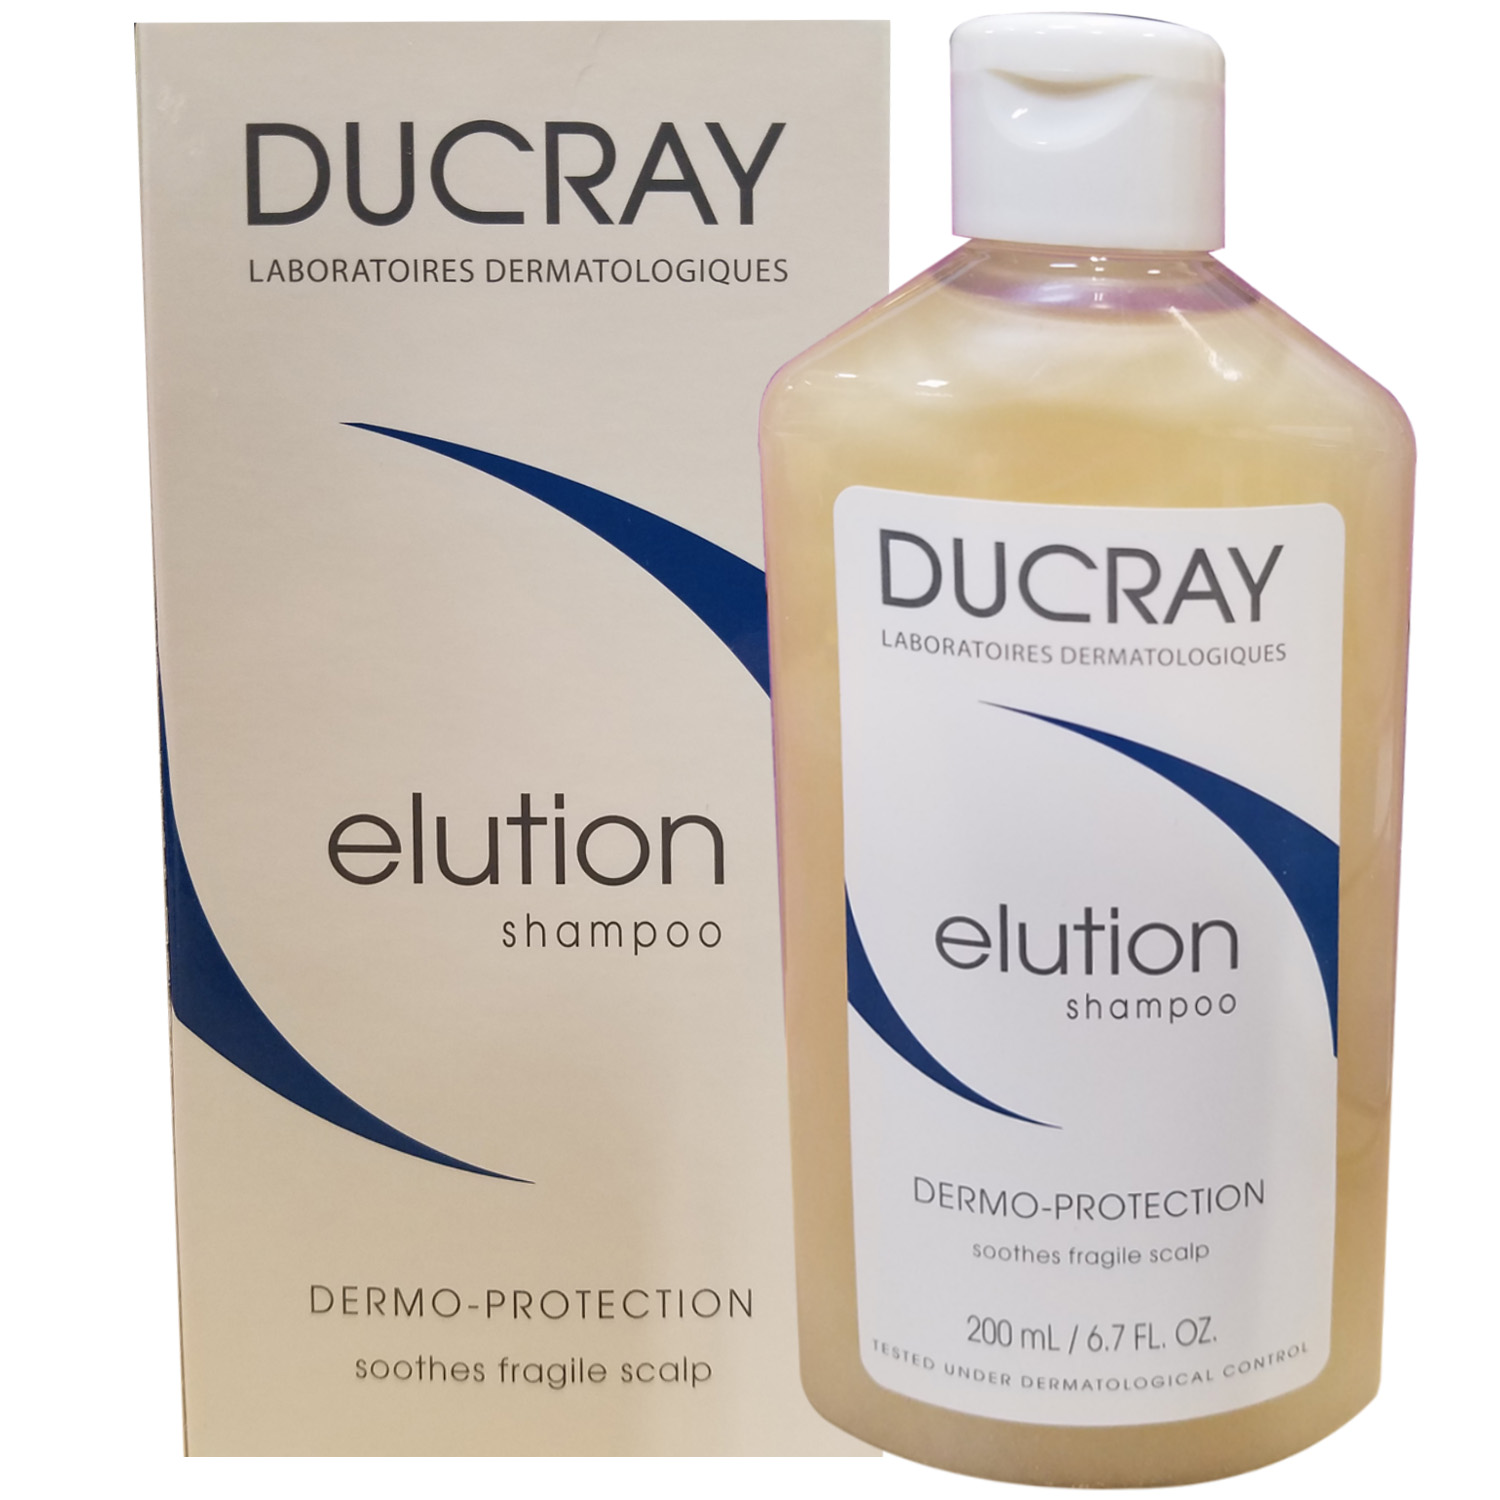 Ducray DUCRAY elution shampoo (200 ml / 6.7 fl oz)